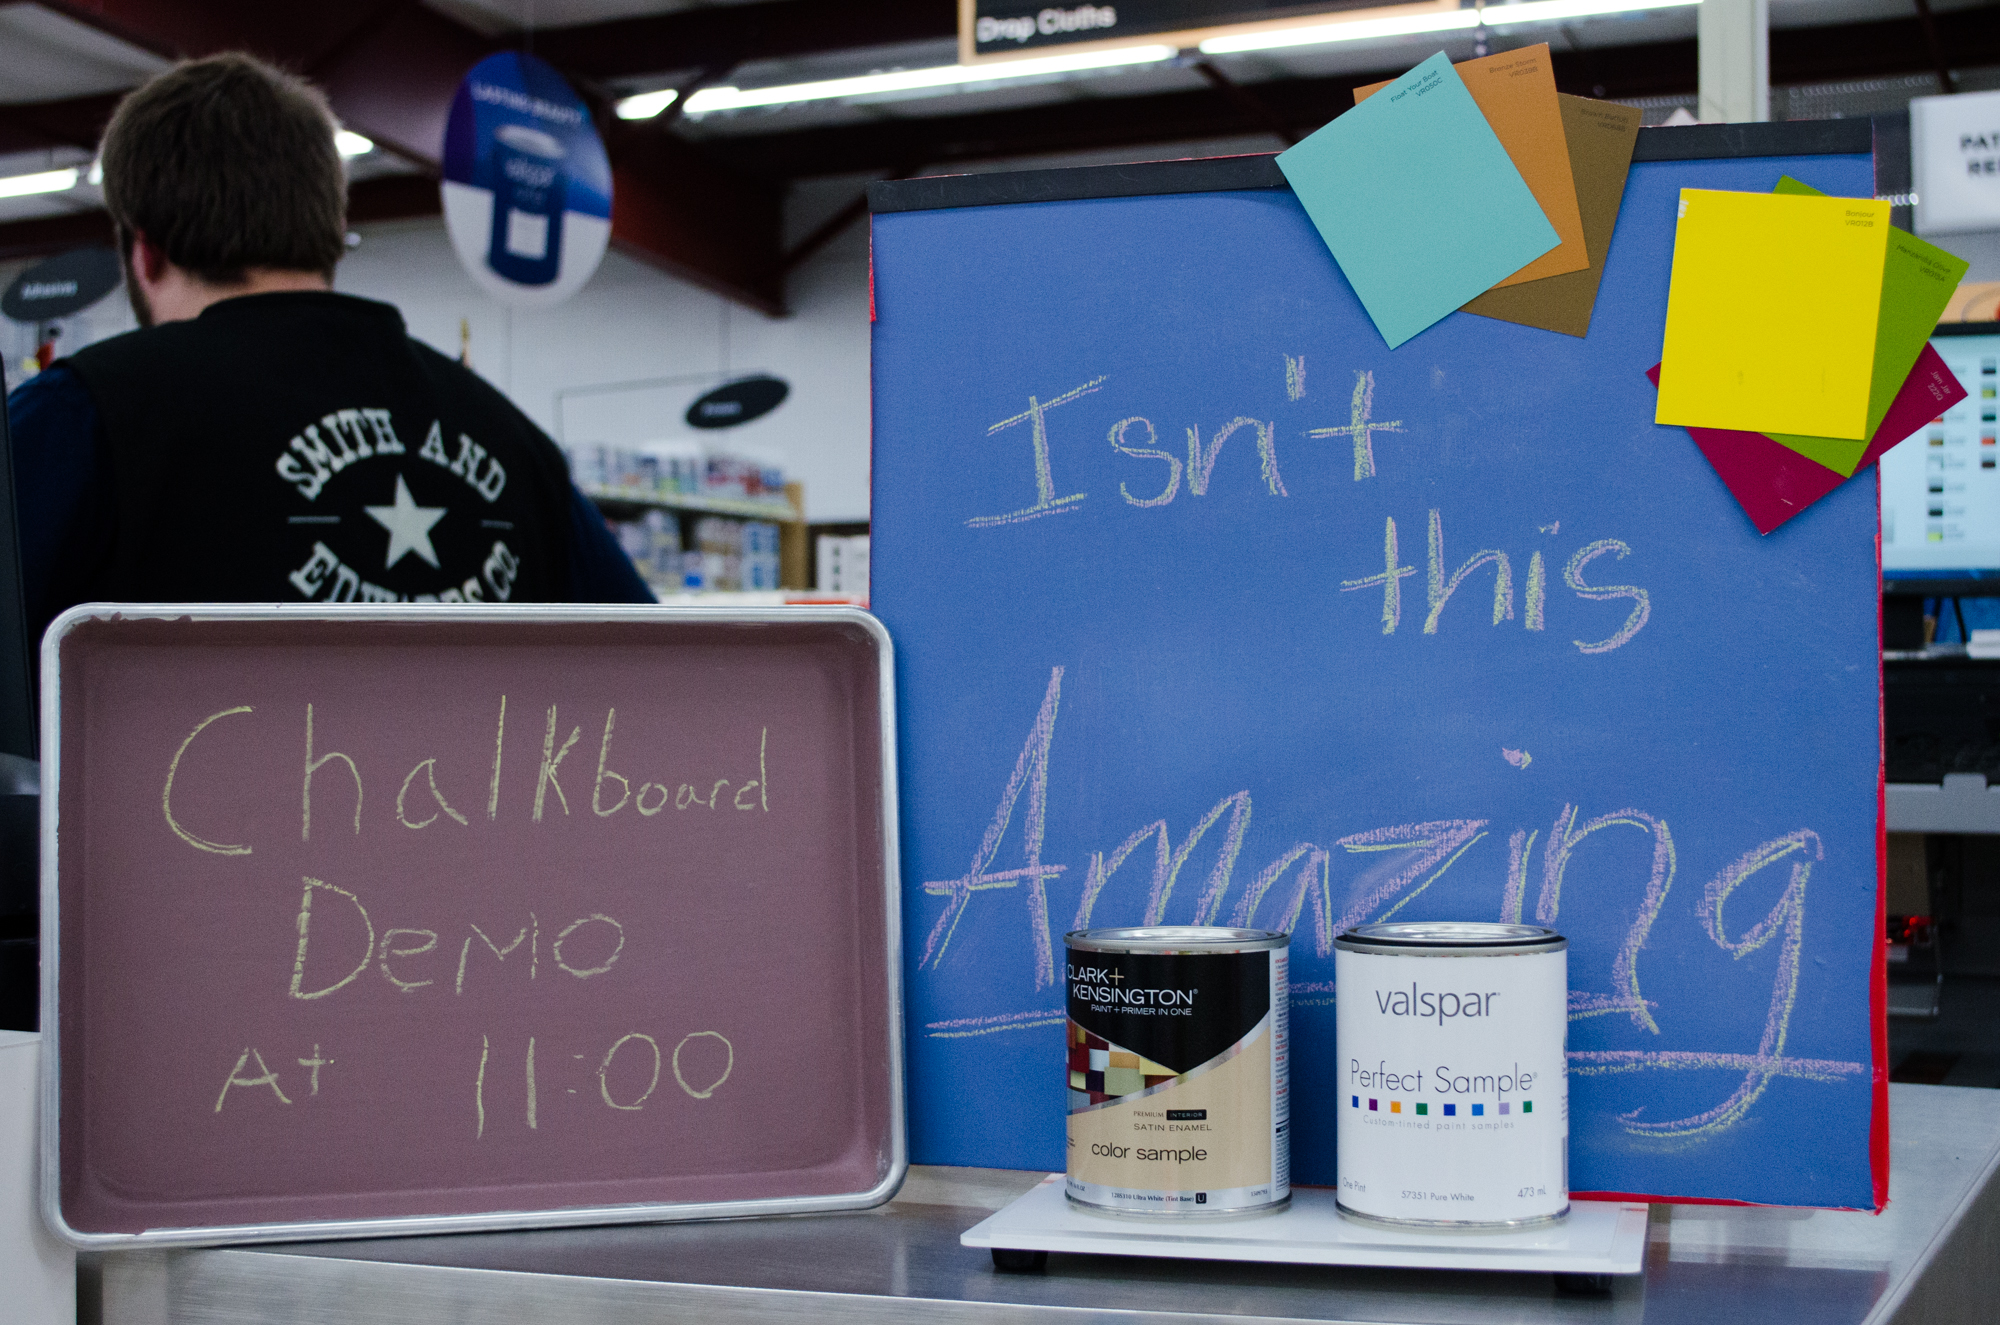 8 Fun Chalkboard Paint Ideas - Two-Tone, Shapes, Parties, & more!